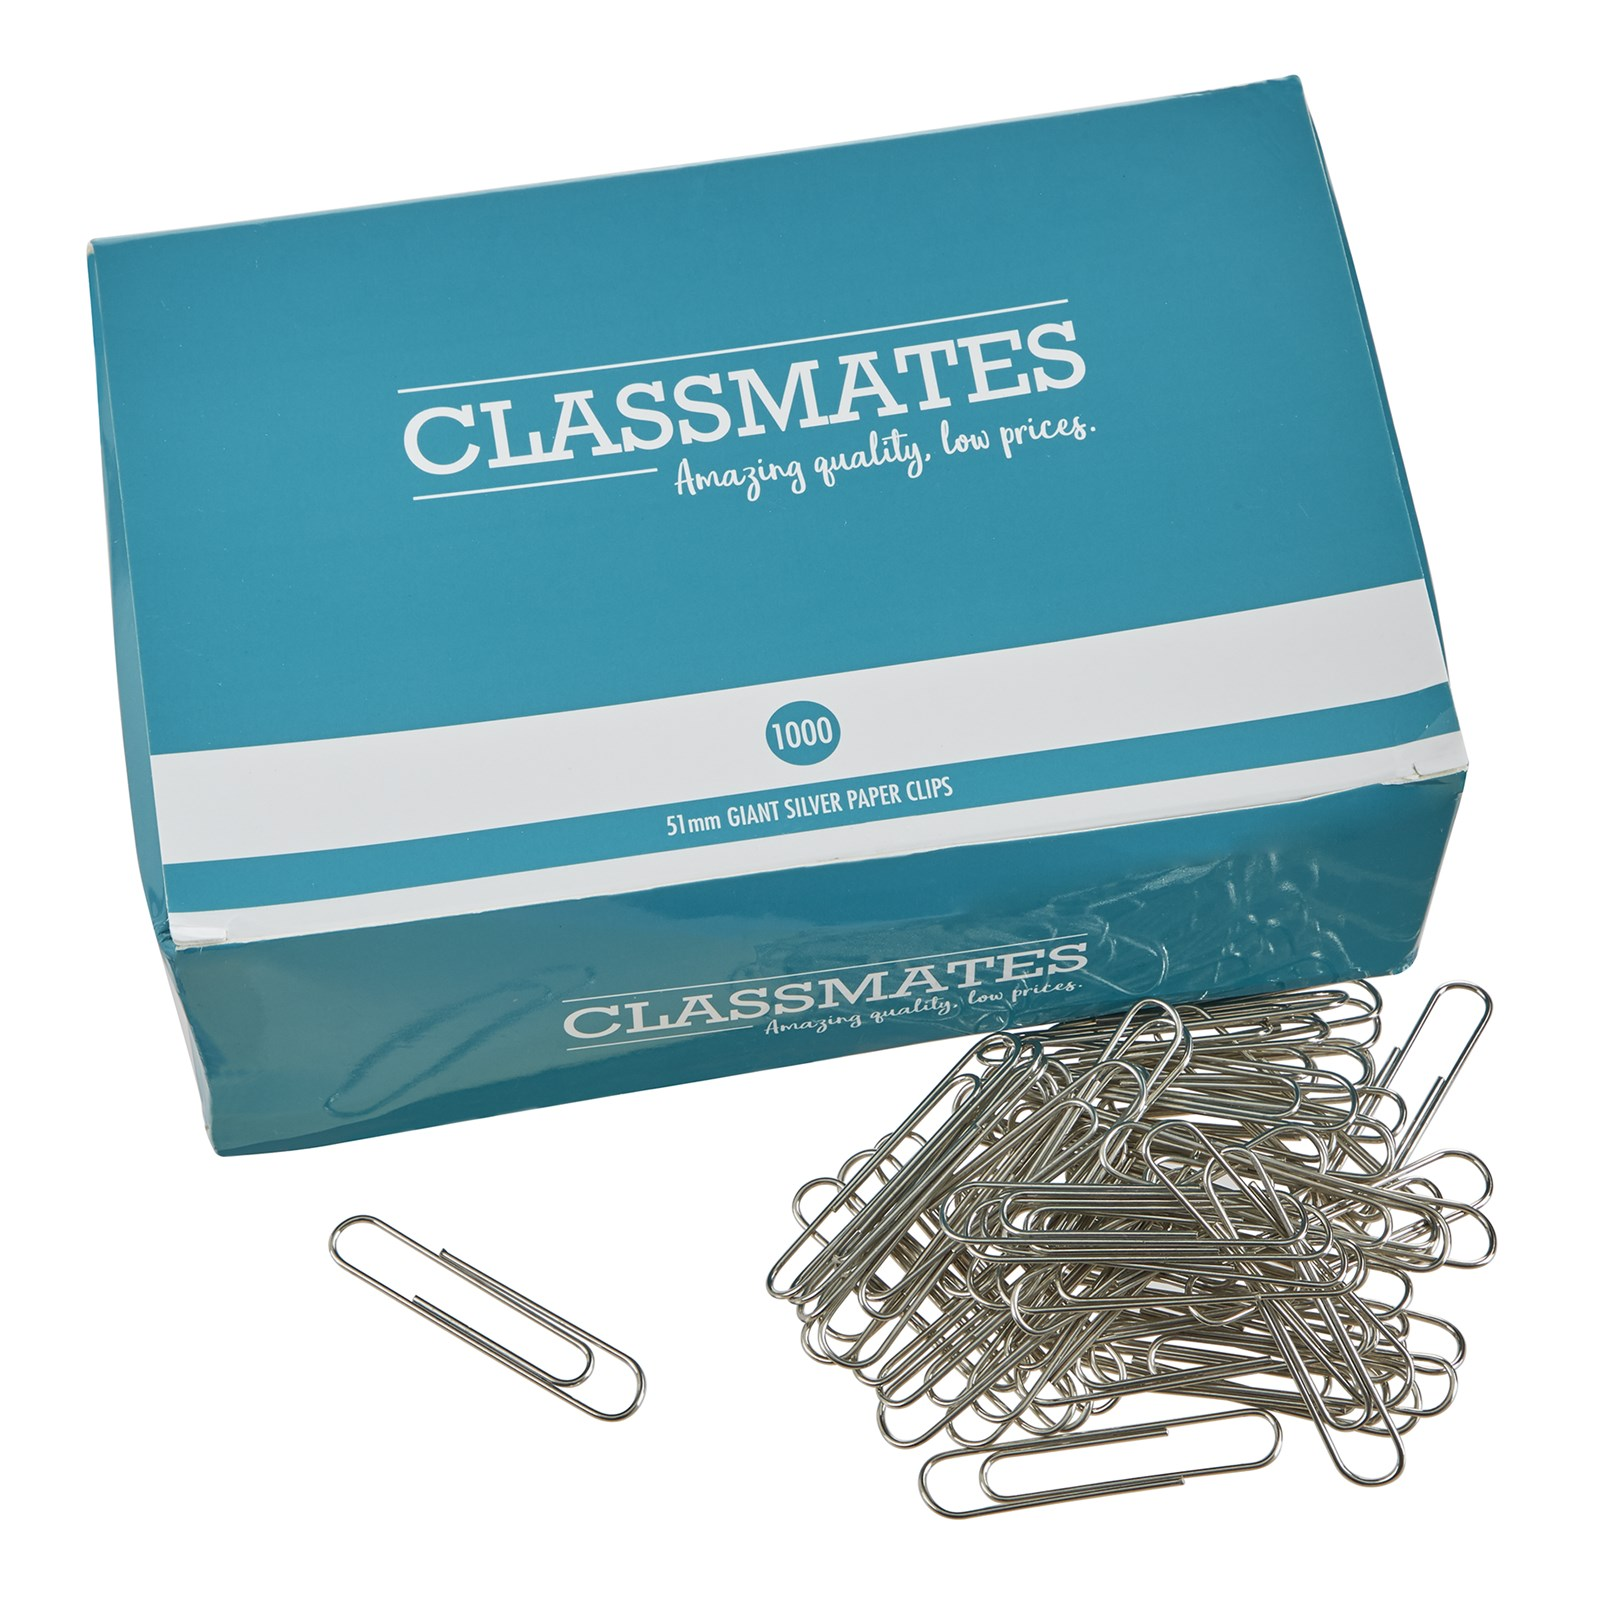 Classmates Paper Clips Giant 51mm - Pack of 1000